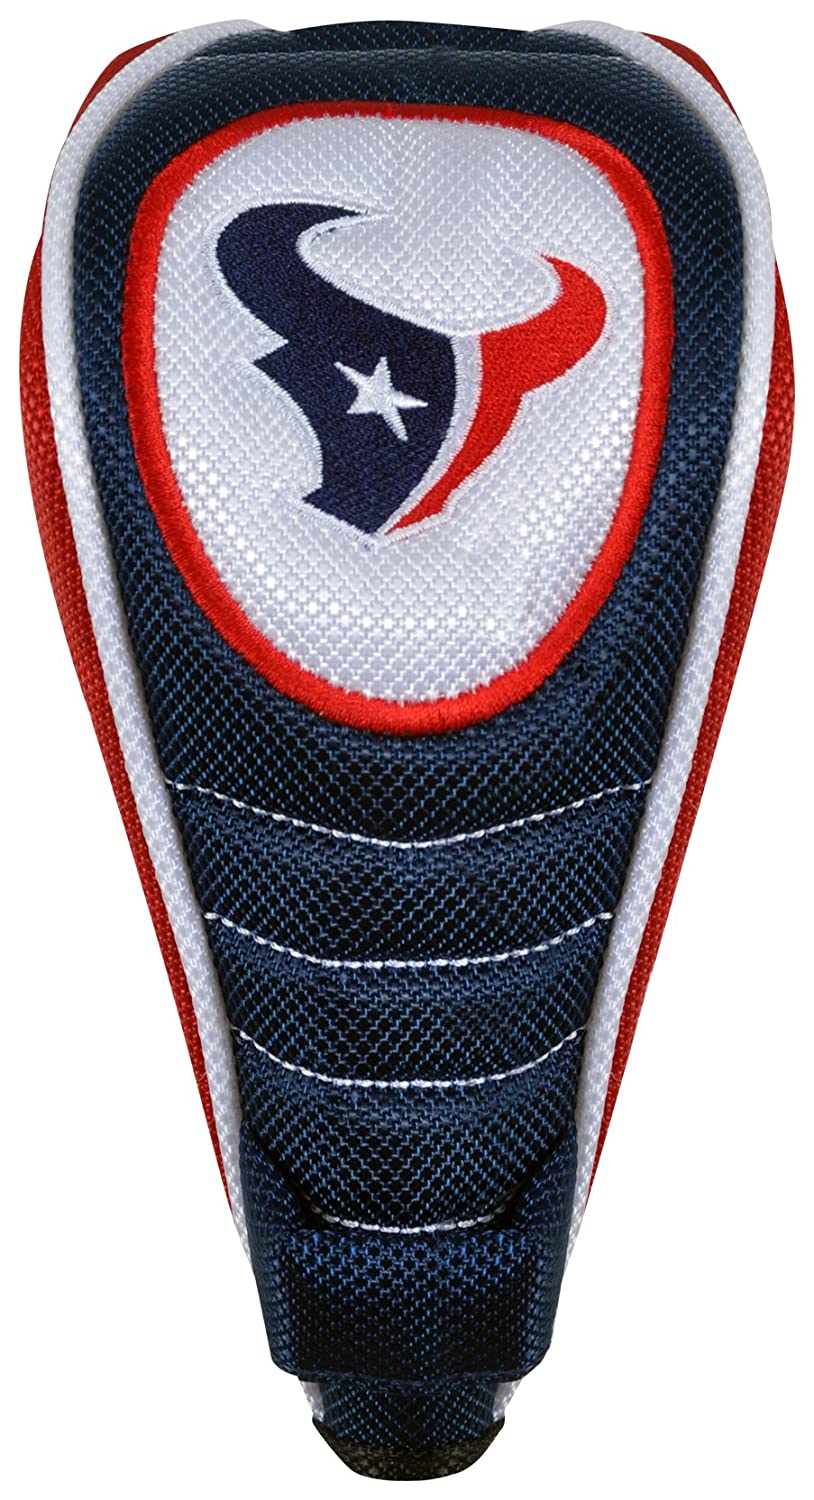 55%以上節約 NFLシャフトGripperユーティリティ用ヘッドカバー Houston B00479TUGA B00479TUGA Texans Houston Texans, 秩父市:c7465c31 --- arianechie.dominiotemporario.com